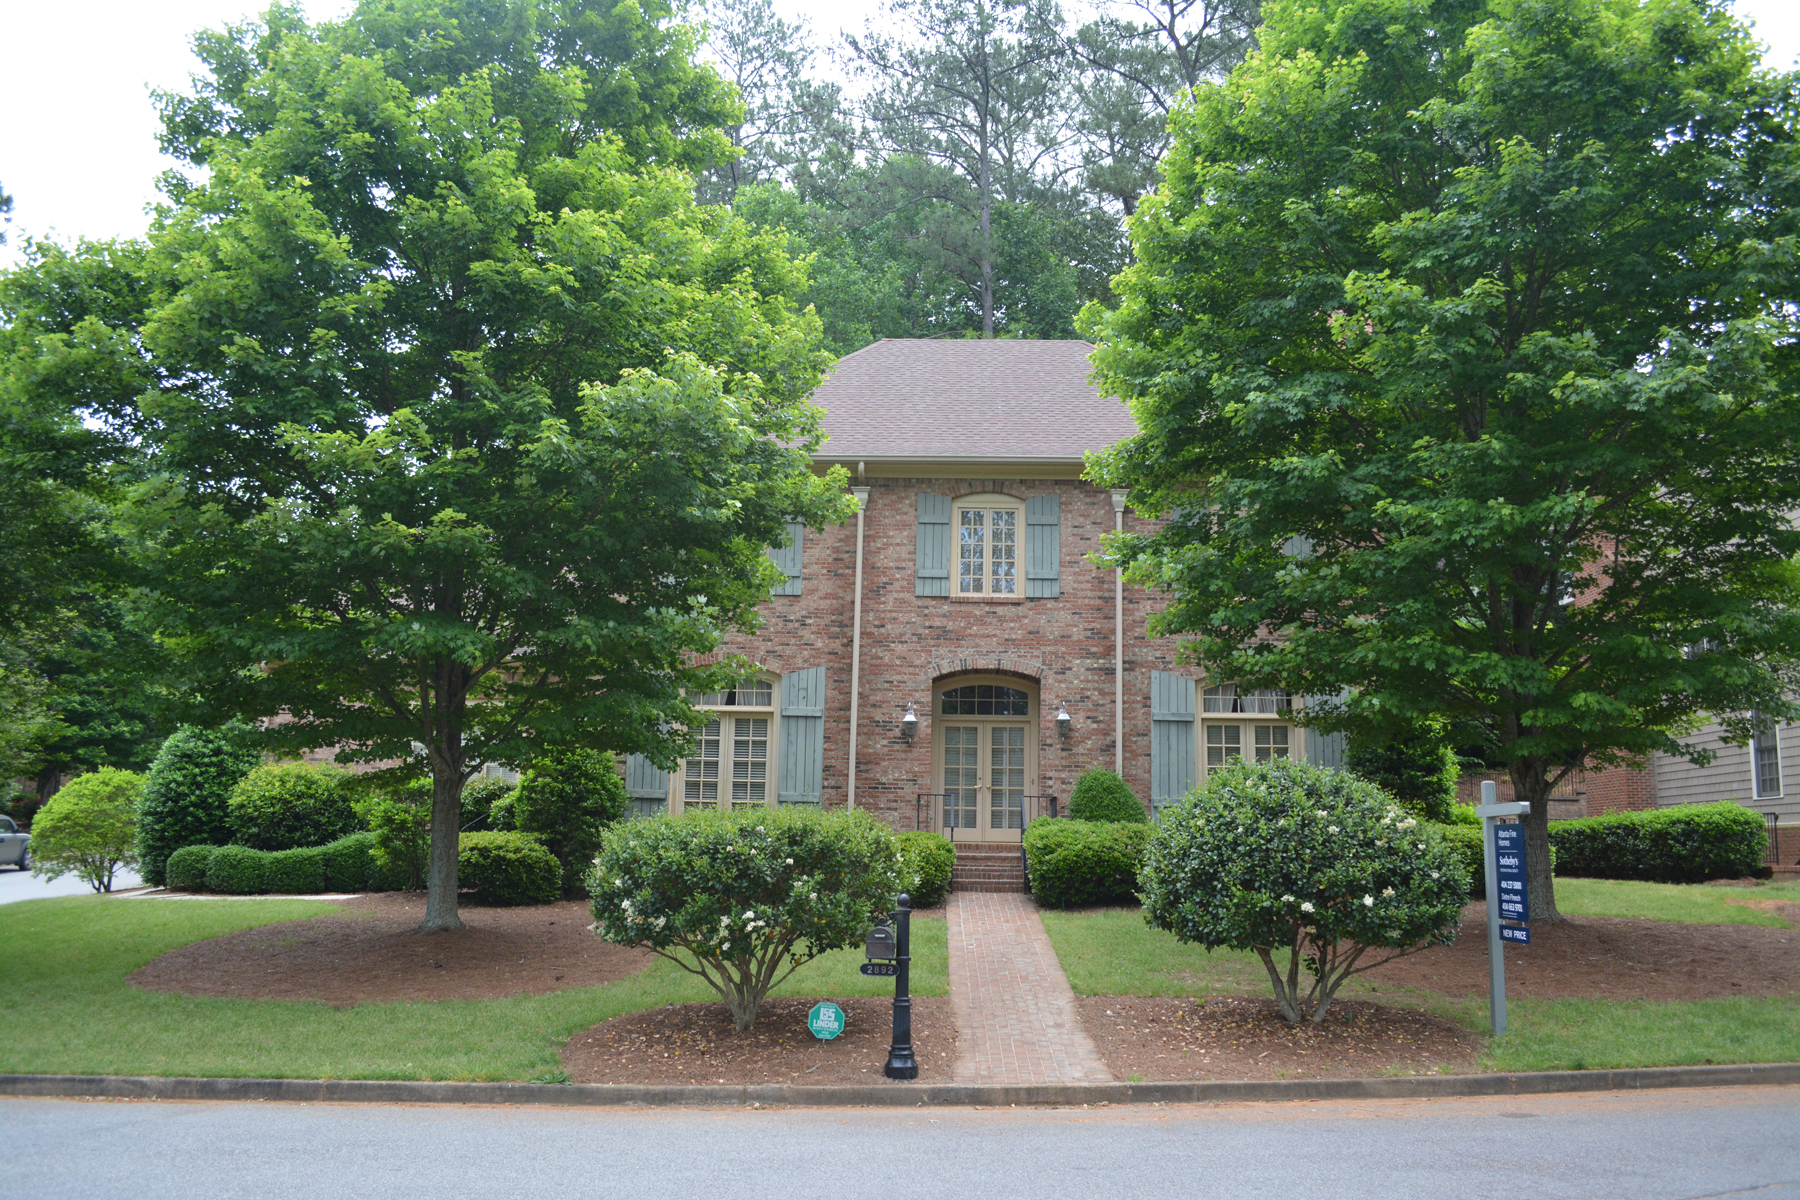 Casa Unifamiliar por un Venta en Three Levels Of Living And Great Schools 2892 Payton Oaks Drive Atlanta, Georgia 30345 Estados Unidos